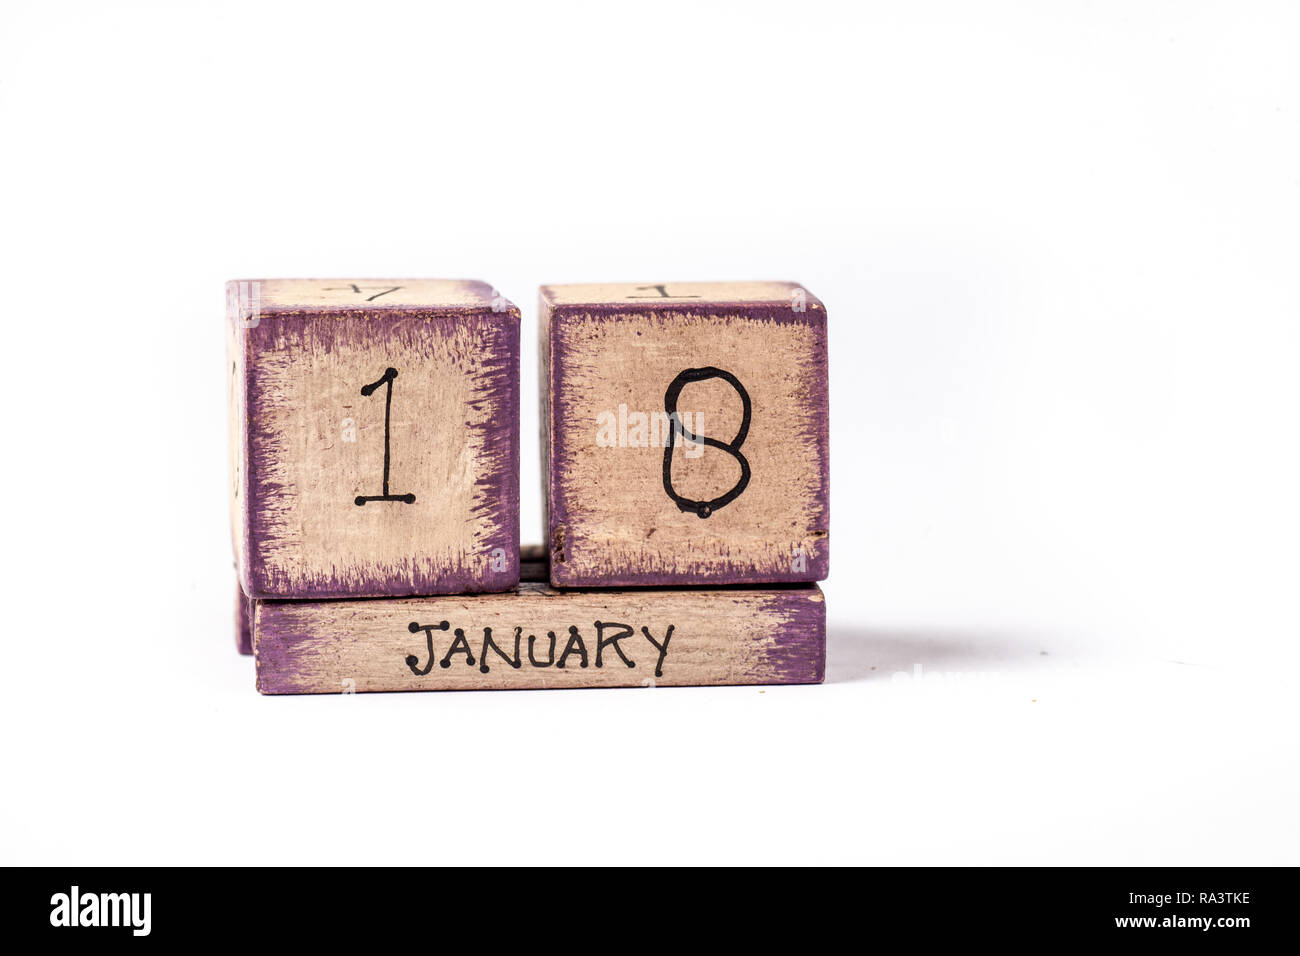 Colorful Wooden Block Perpetual Calendar Showing January 18th - Stock Image